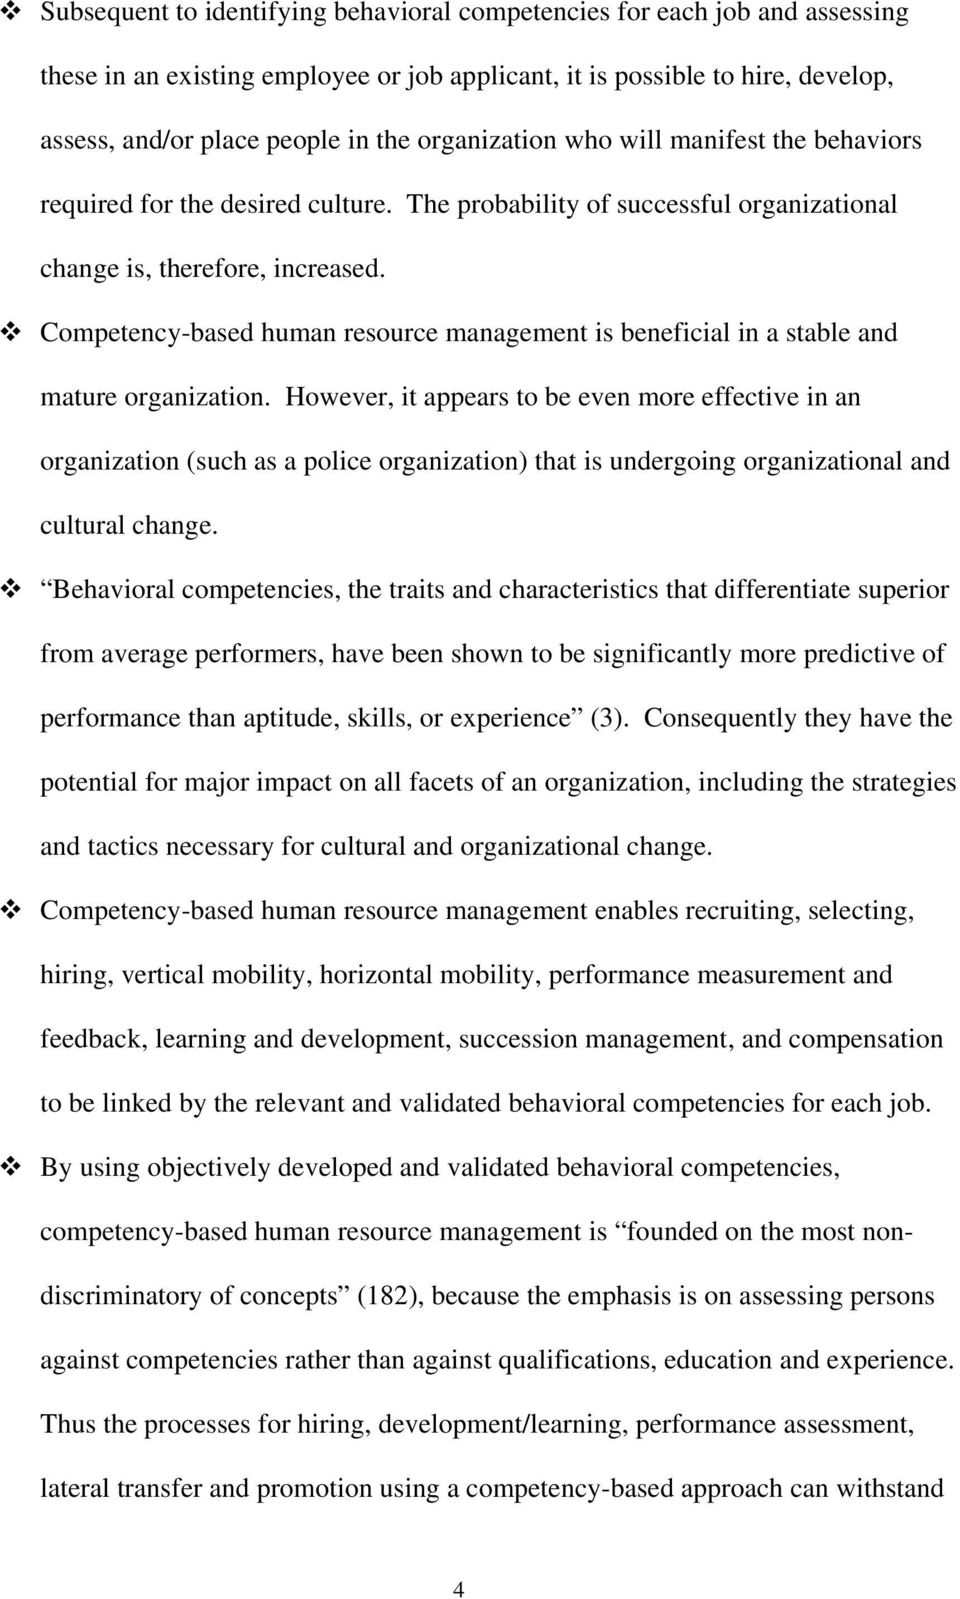 Competency-based human resource management is beneficial in a stable and mature organization.